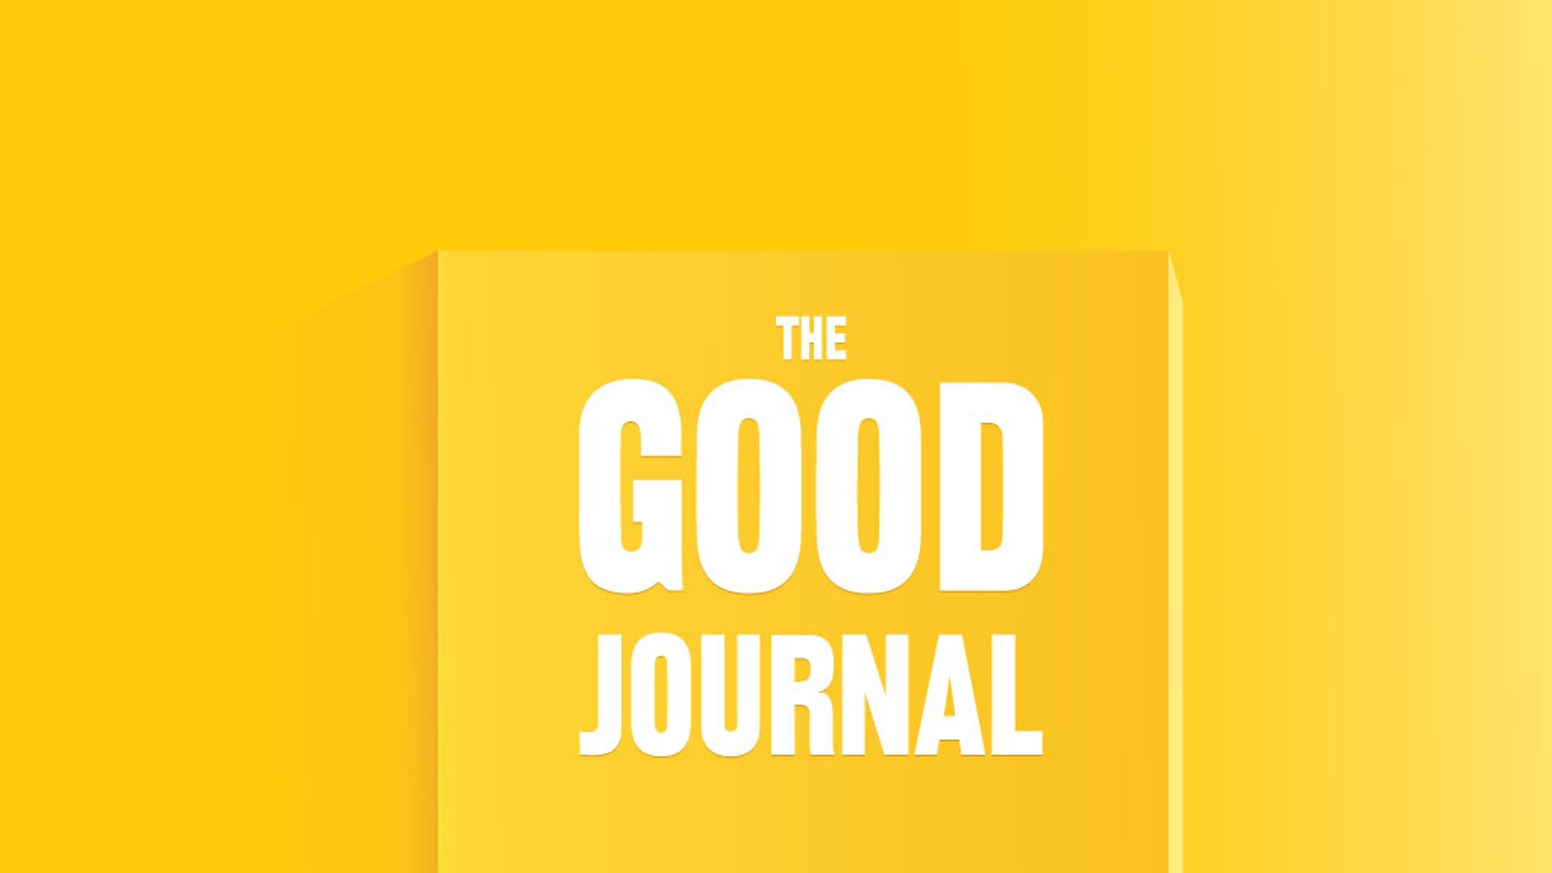 The Good Journal - a quarterly literary magazine by Nikesh